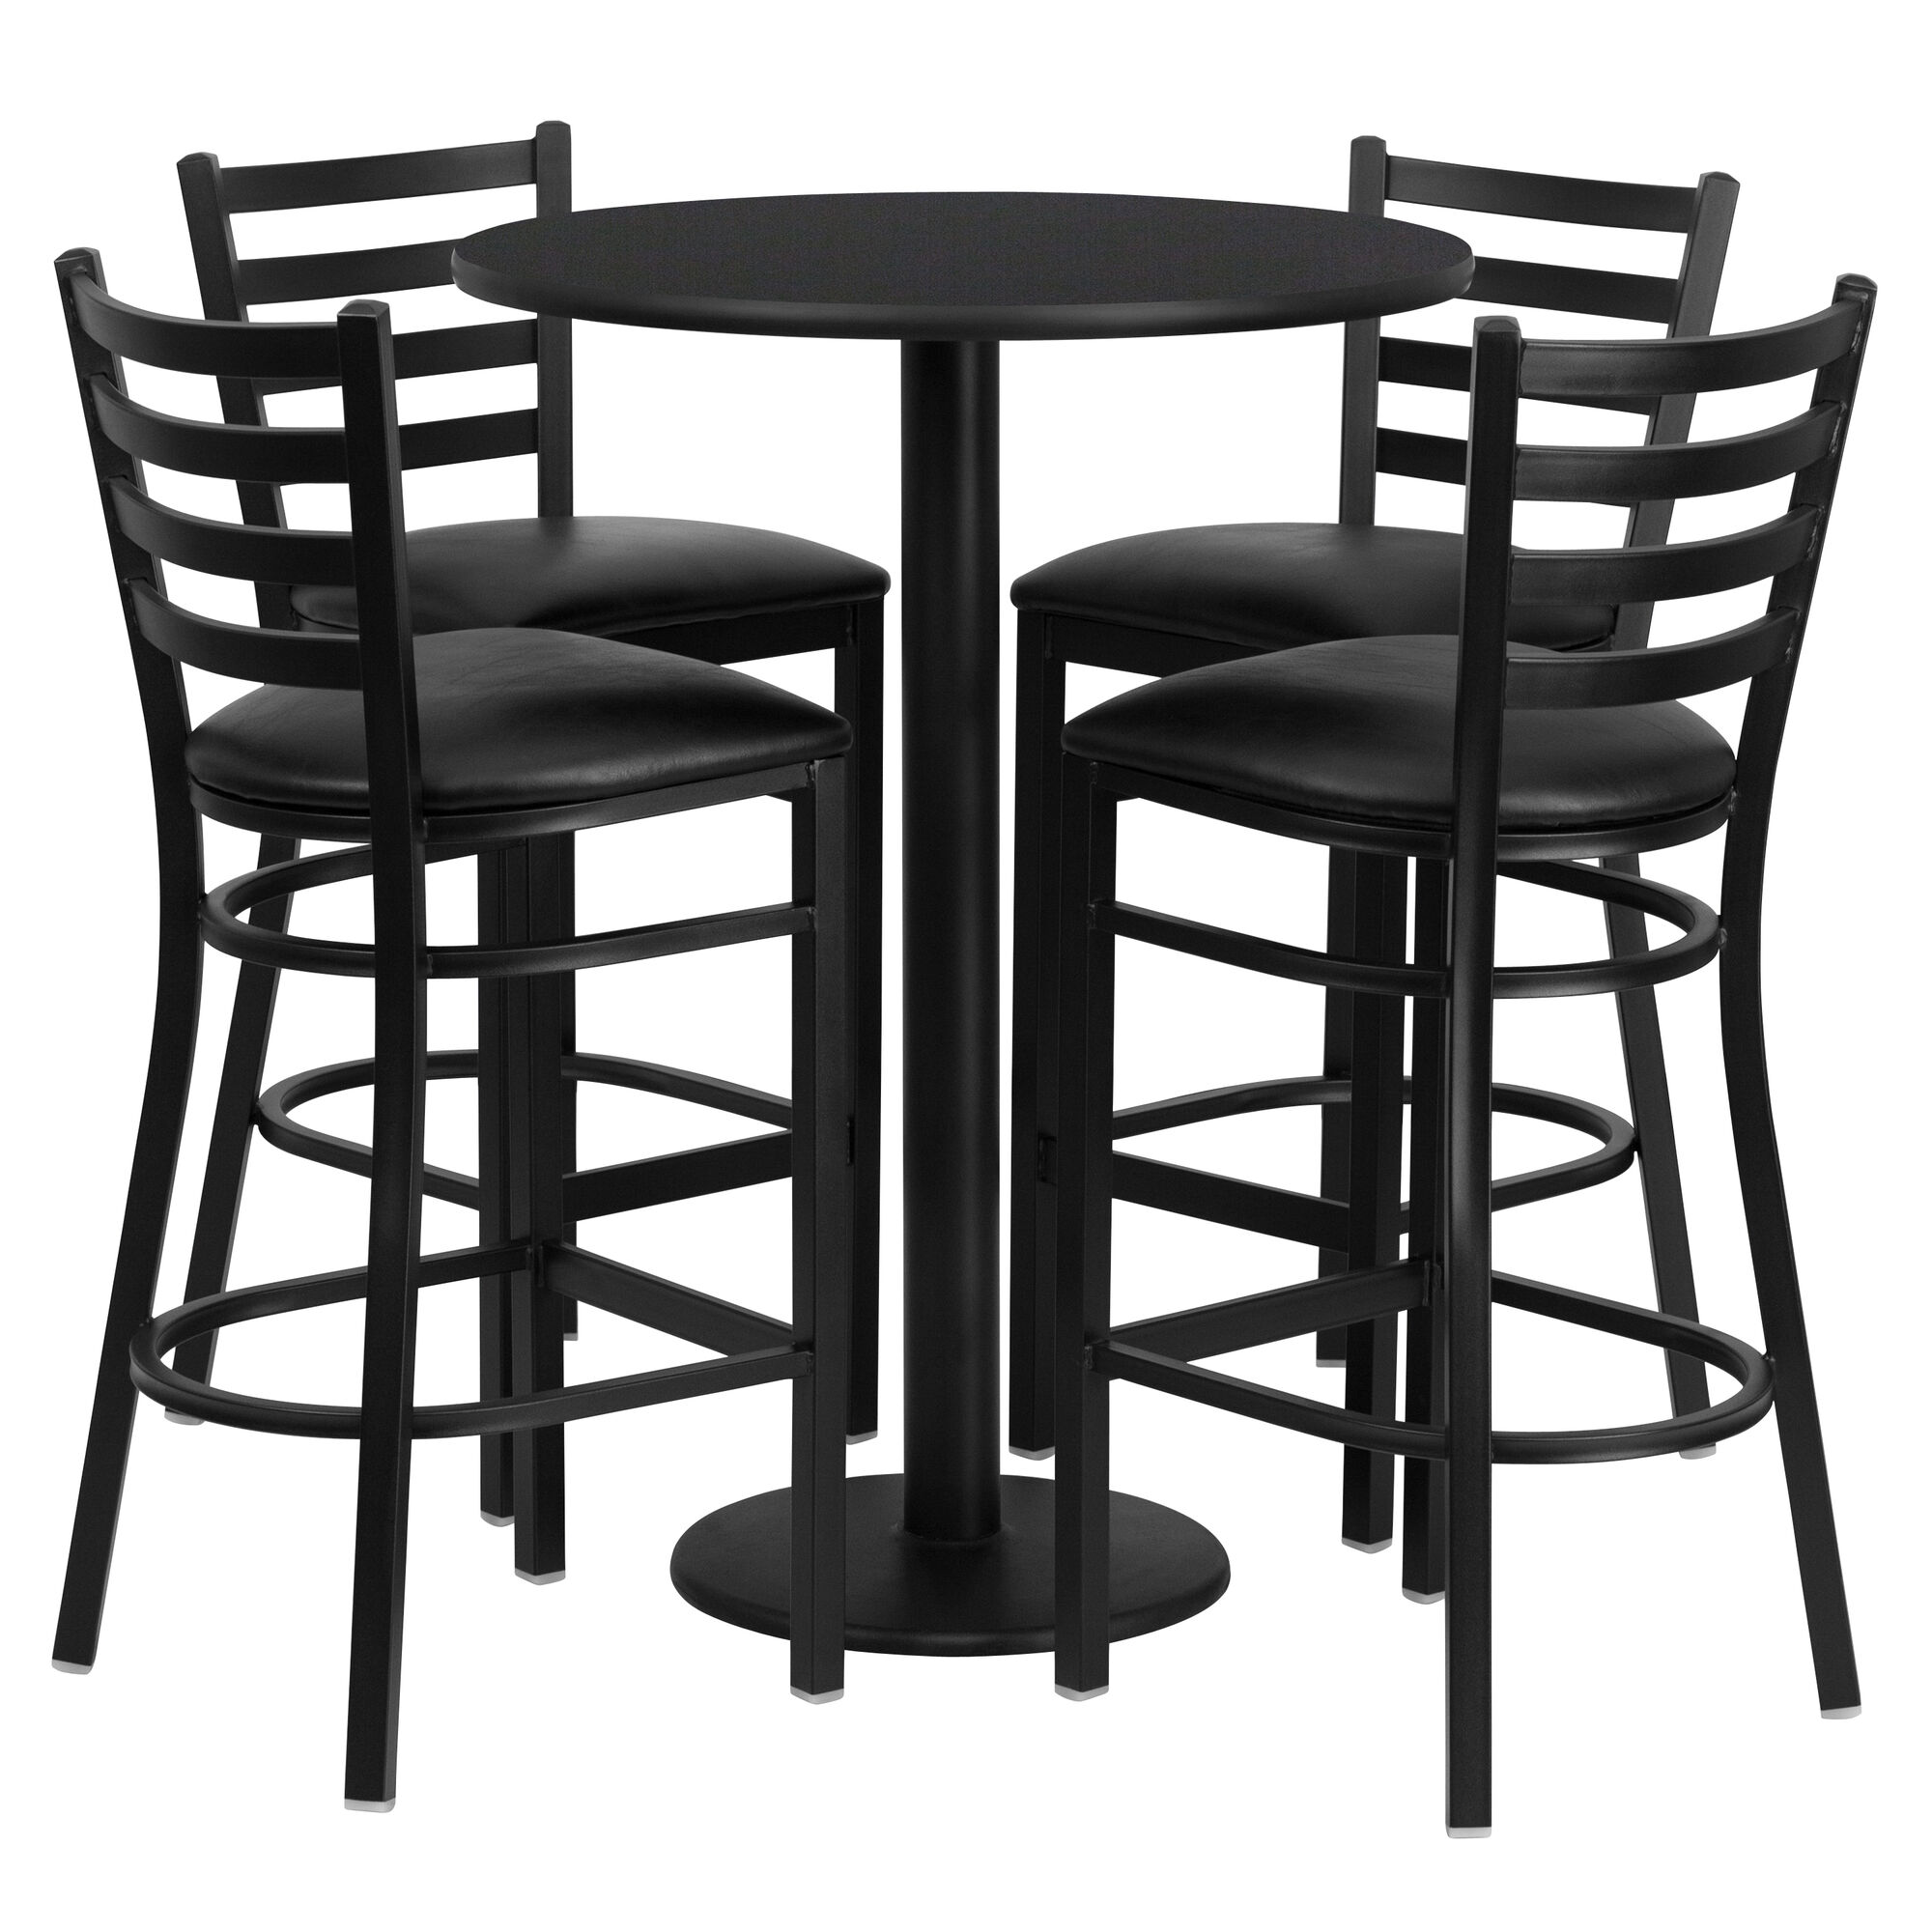 30 Round High Top Restaurant Cafe Bar Table And Cherry: 30RD BK Bar Table-BK VYL Seat REST-016-BK-BK-TDR